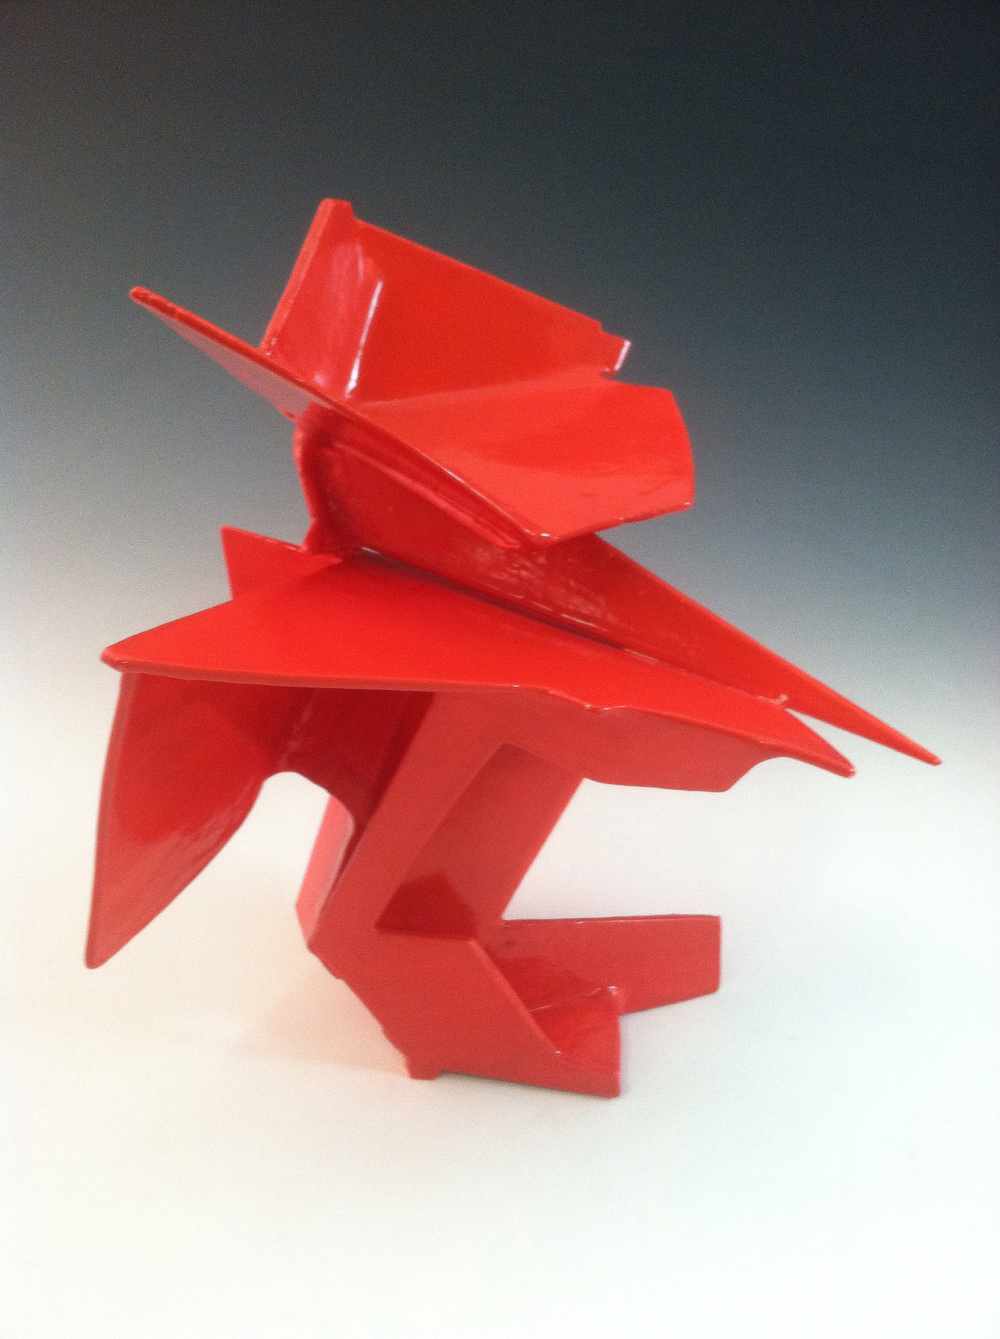 Red geometric sculpture